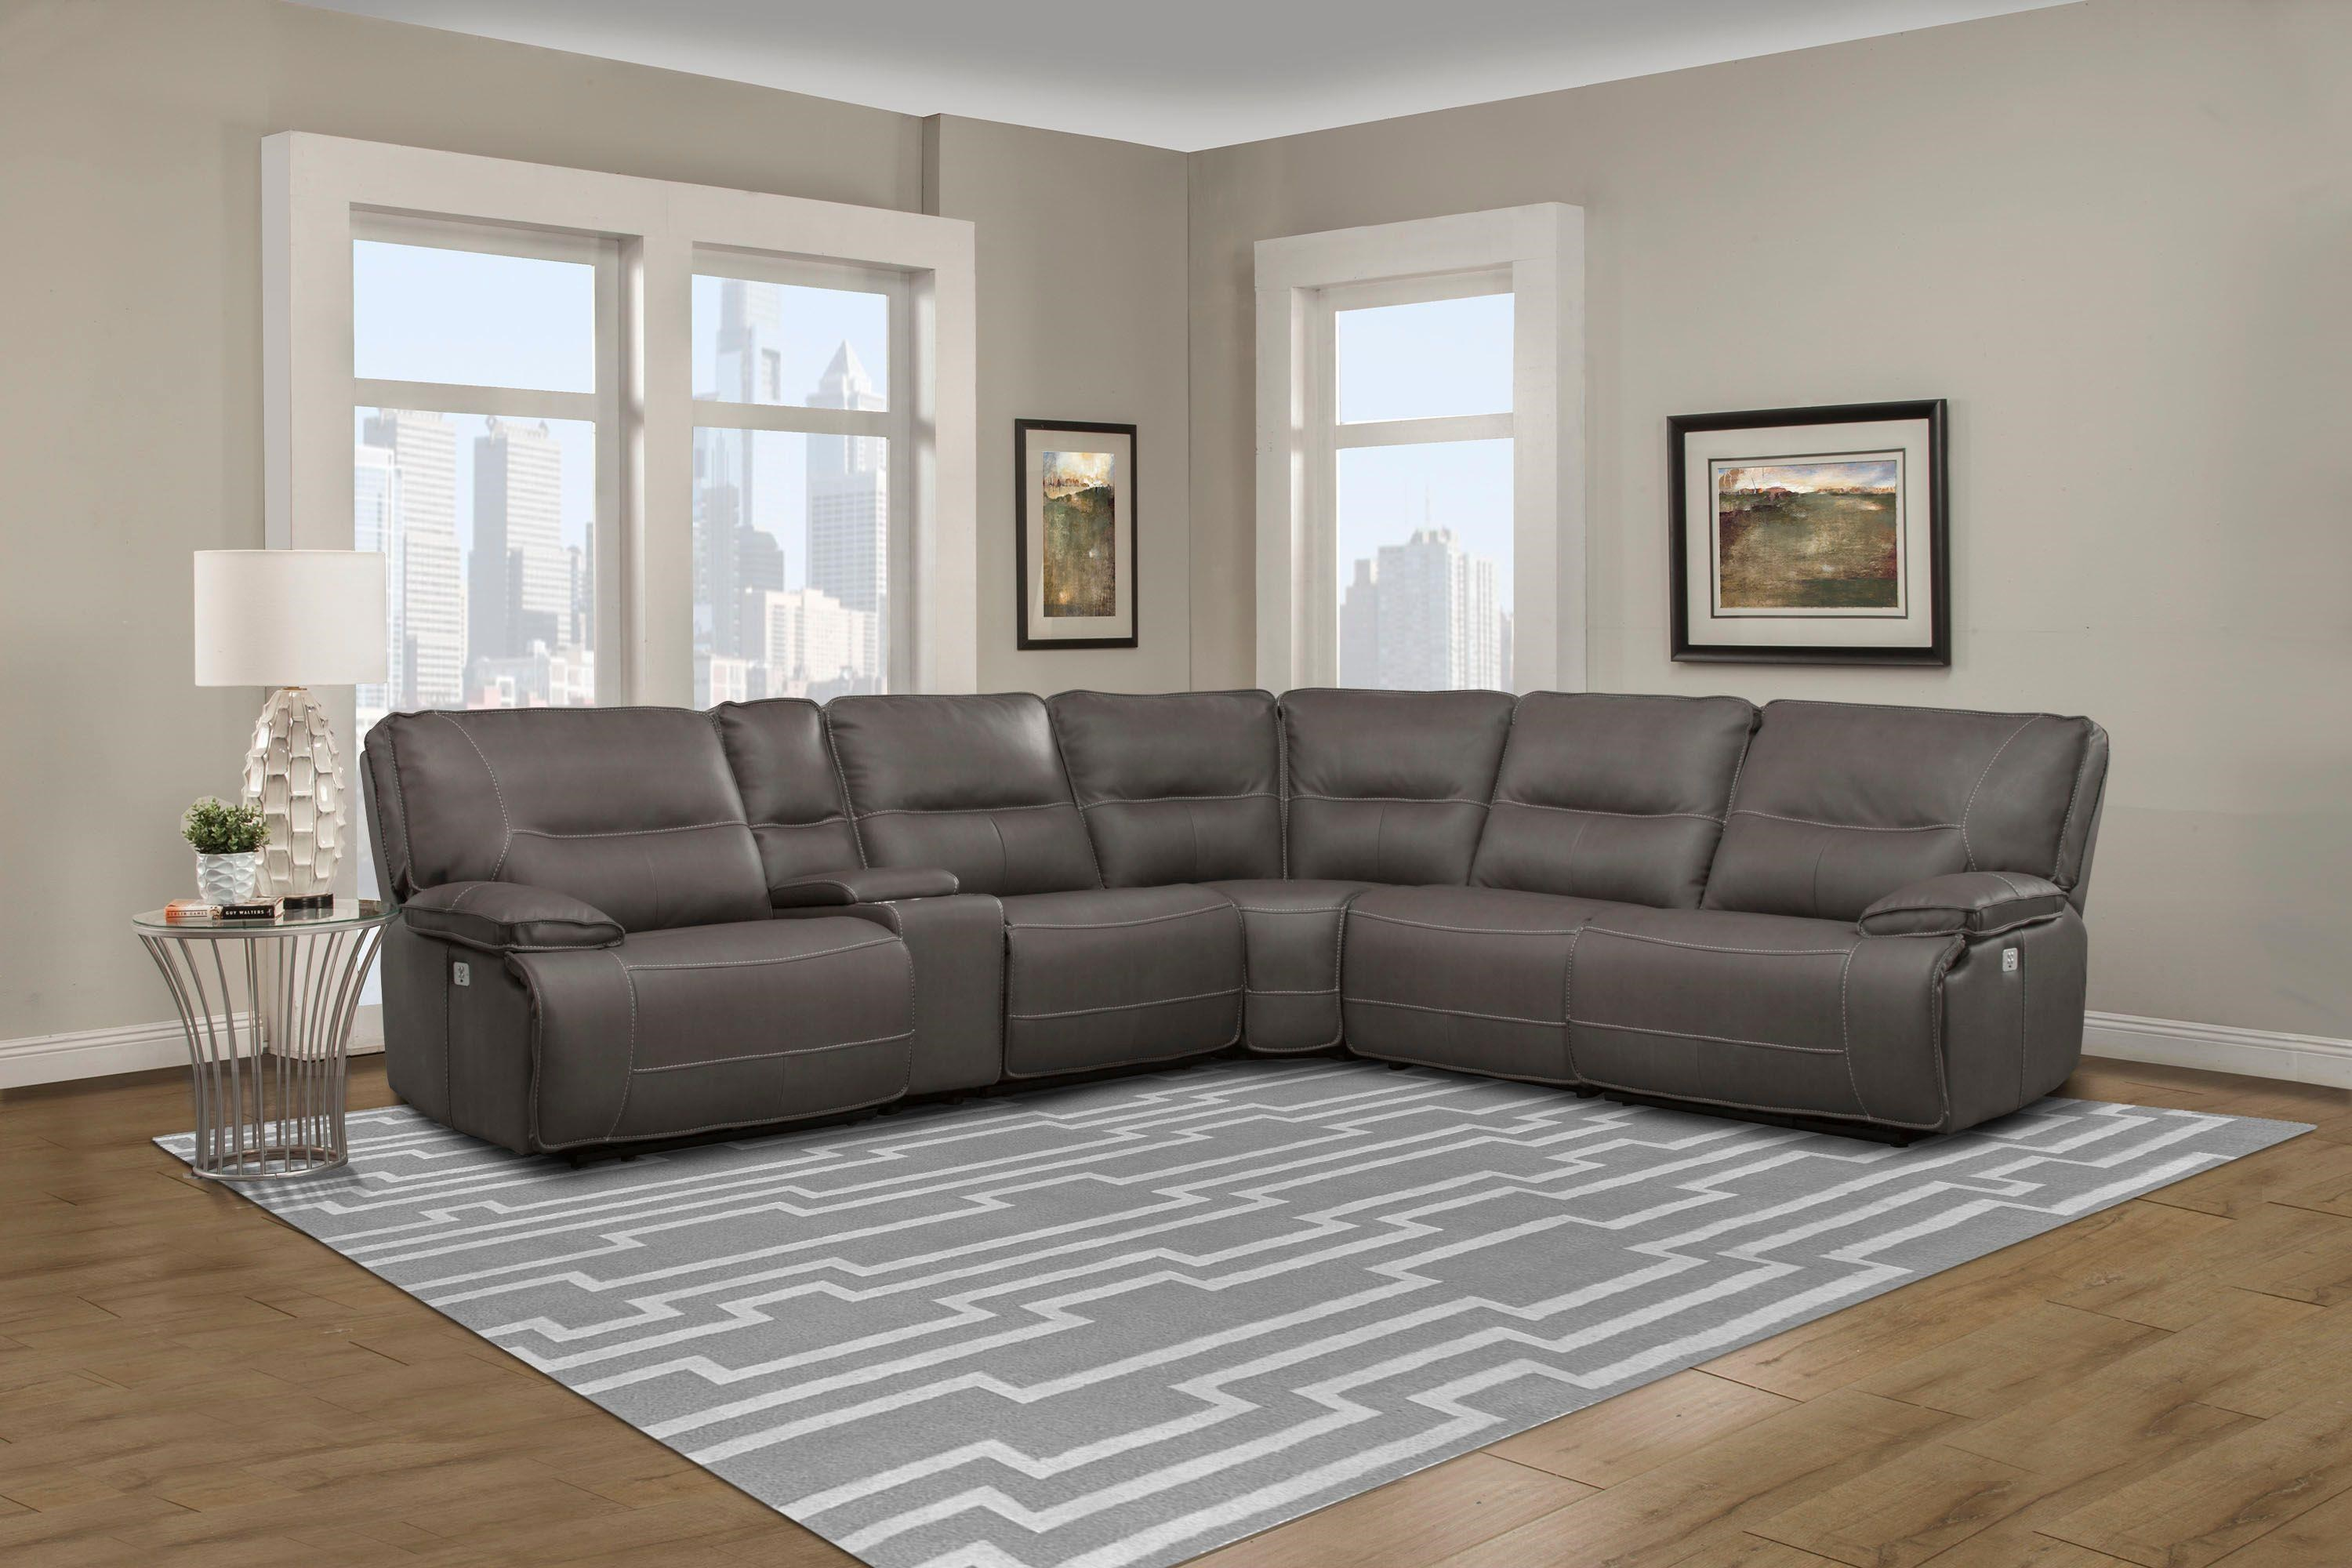 SPARTACUS 6PC POWER RECLINING SECTIONAL SOFA by Parker House at Beck's Furniture